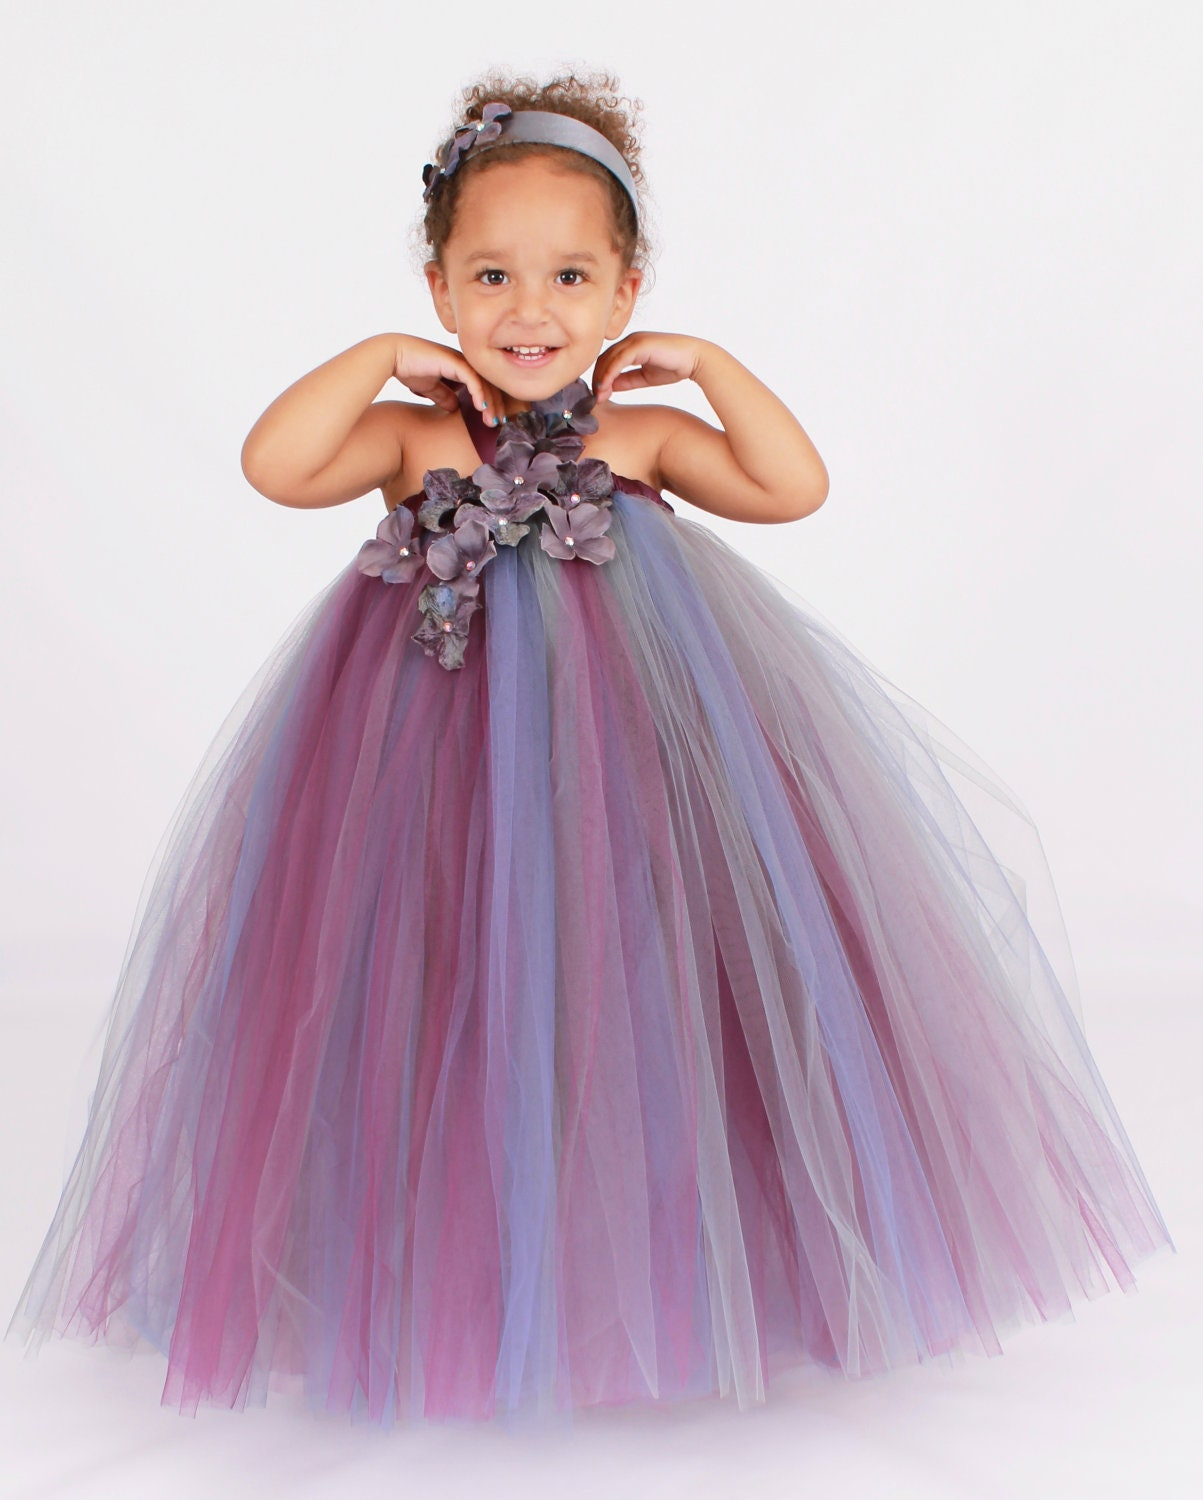 Flower Girl Tutu Dress Purple & Grey by Cutiepatootiedesignz